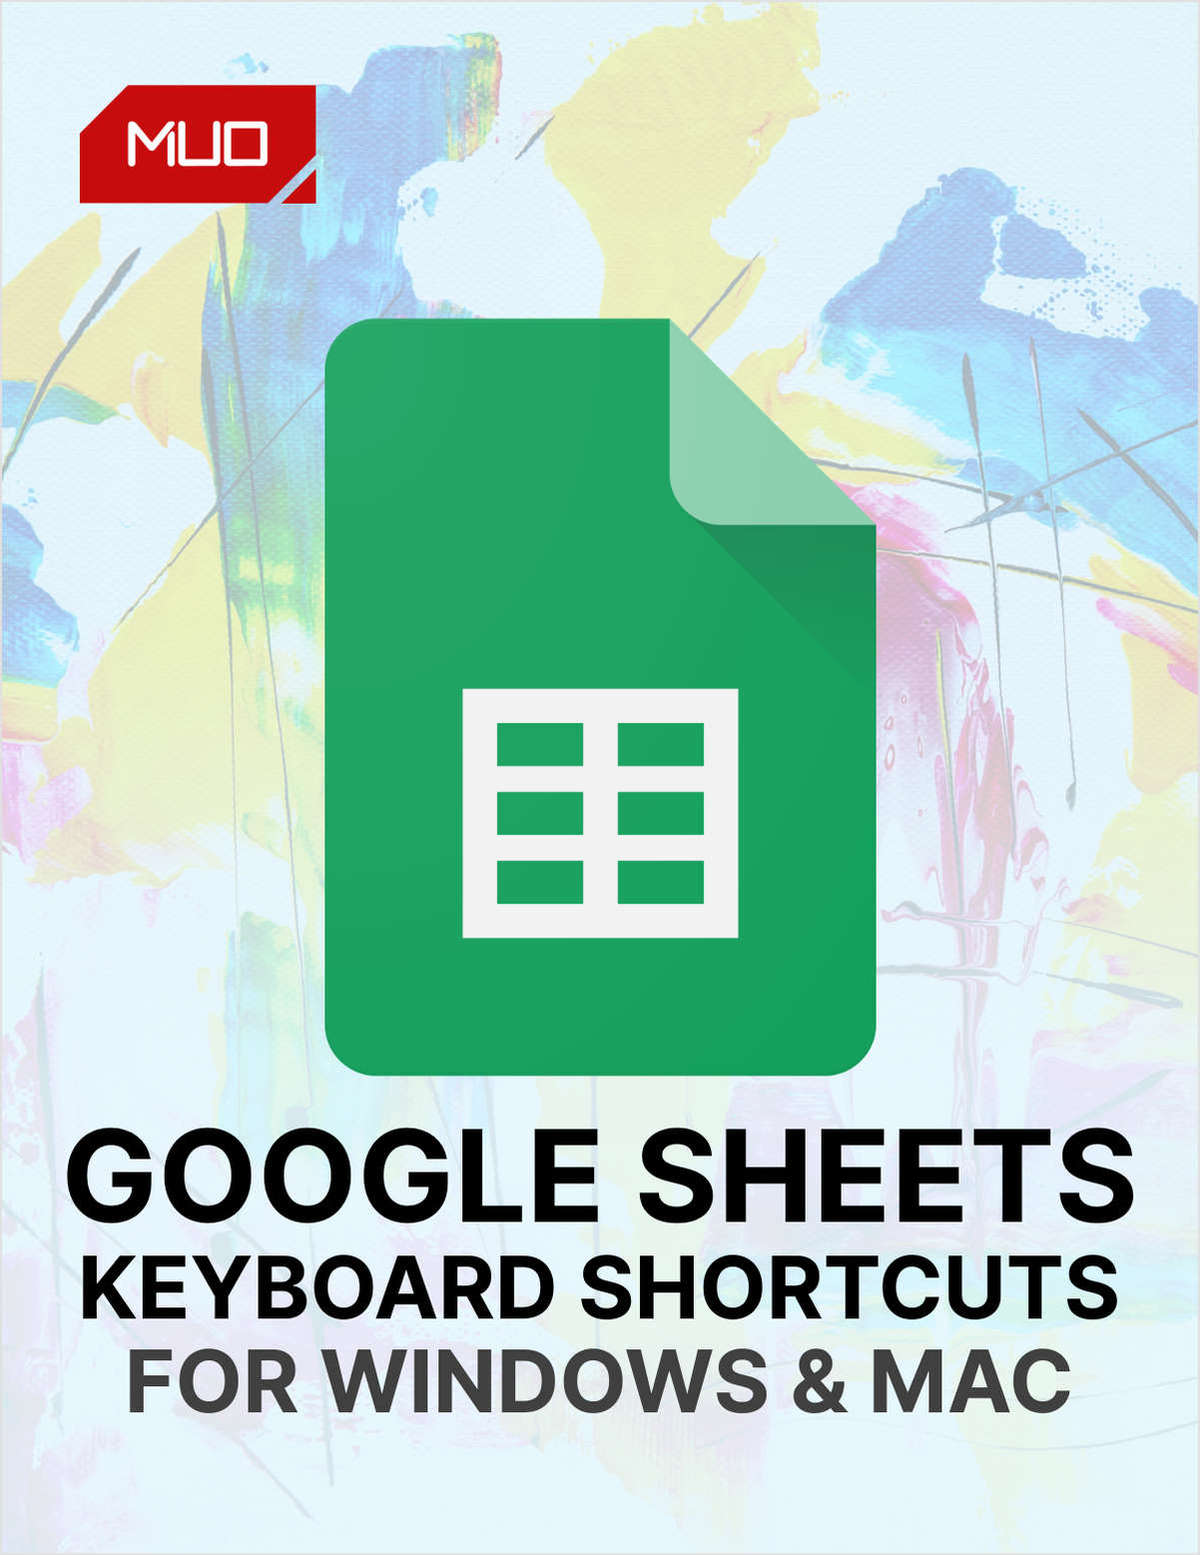 Google Sheets: Every Keyboard Shortcut You Need for Windows and Mac